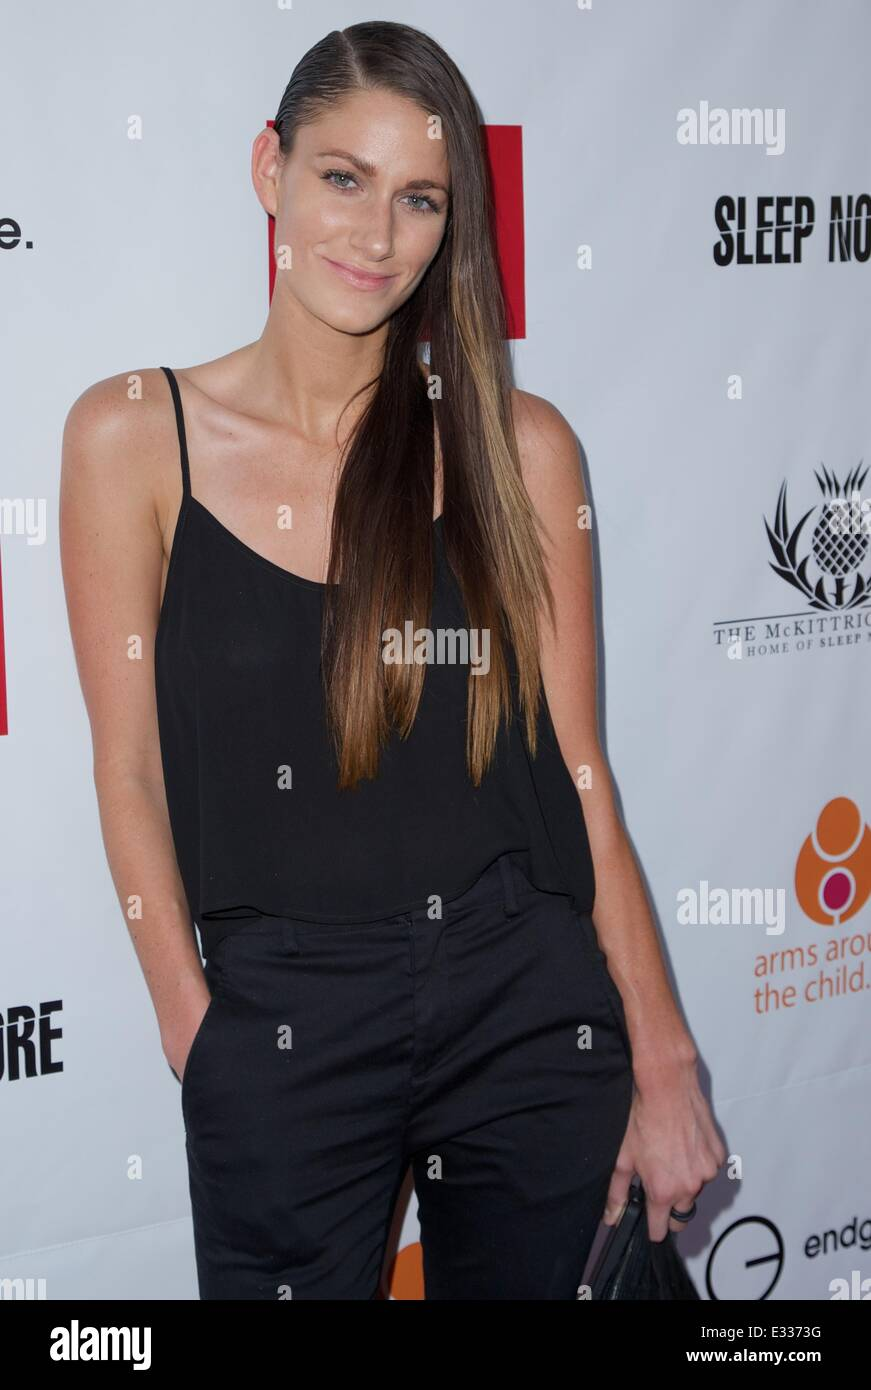 EndGame: The Global Campaign to defeat AIDS, TB And Malaria charity event at The McKittrick Hotel  Featuring: NIIA - Stock Image